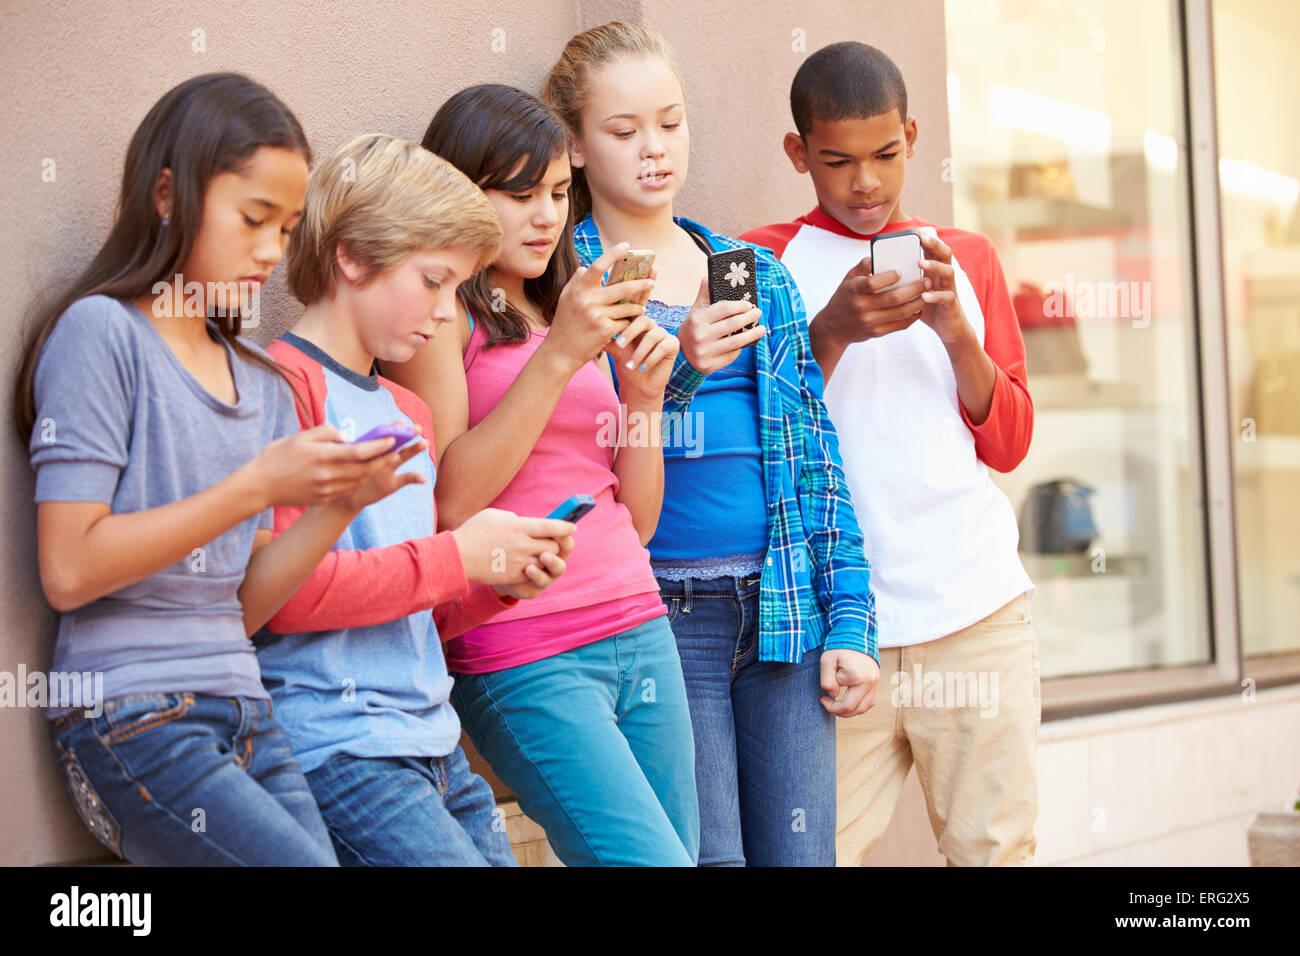 Group Of Children Sitting In Mall Using Mobile Phones - Stock Image